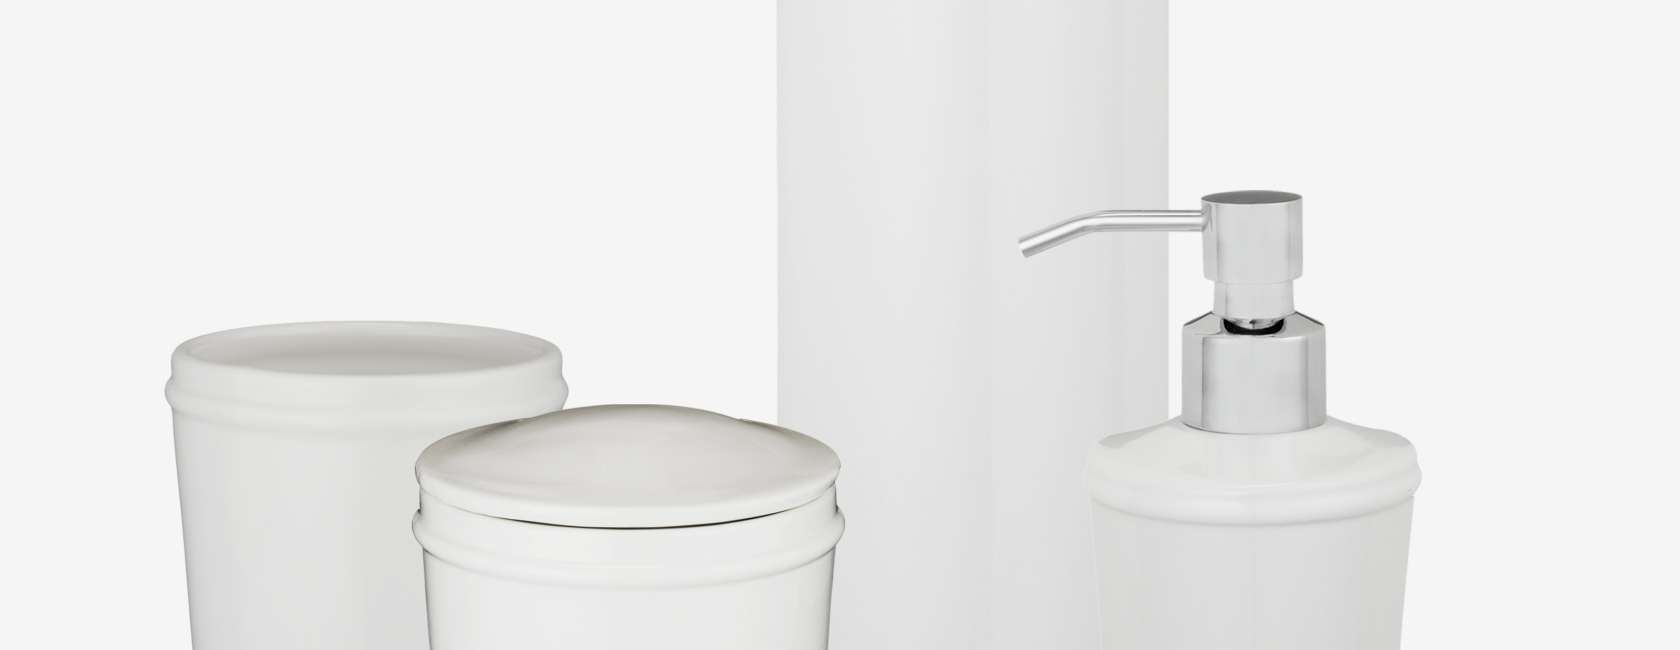 Croft Collection Skye Bathroom Accessories at John Lewis